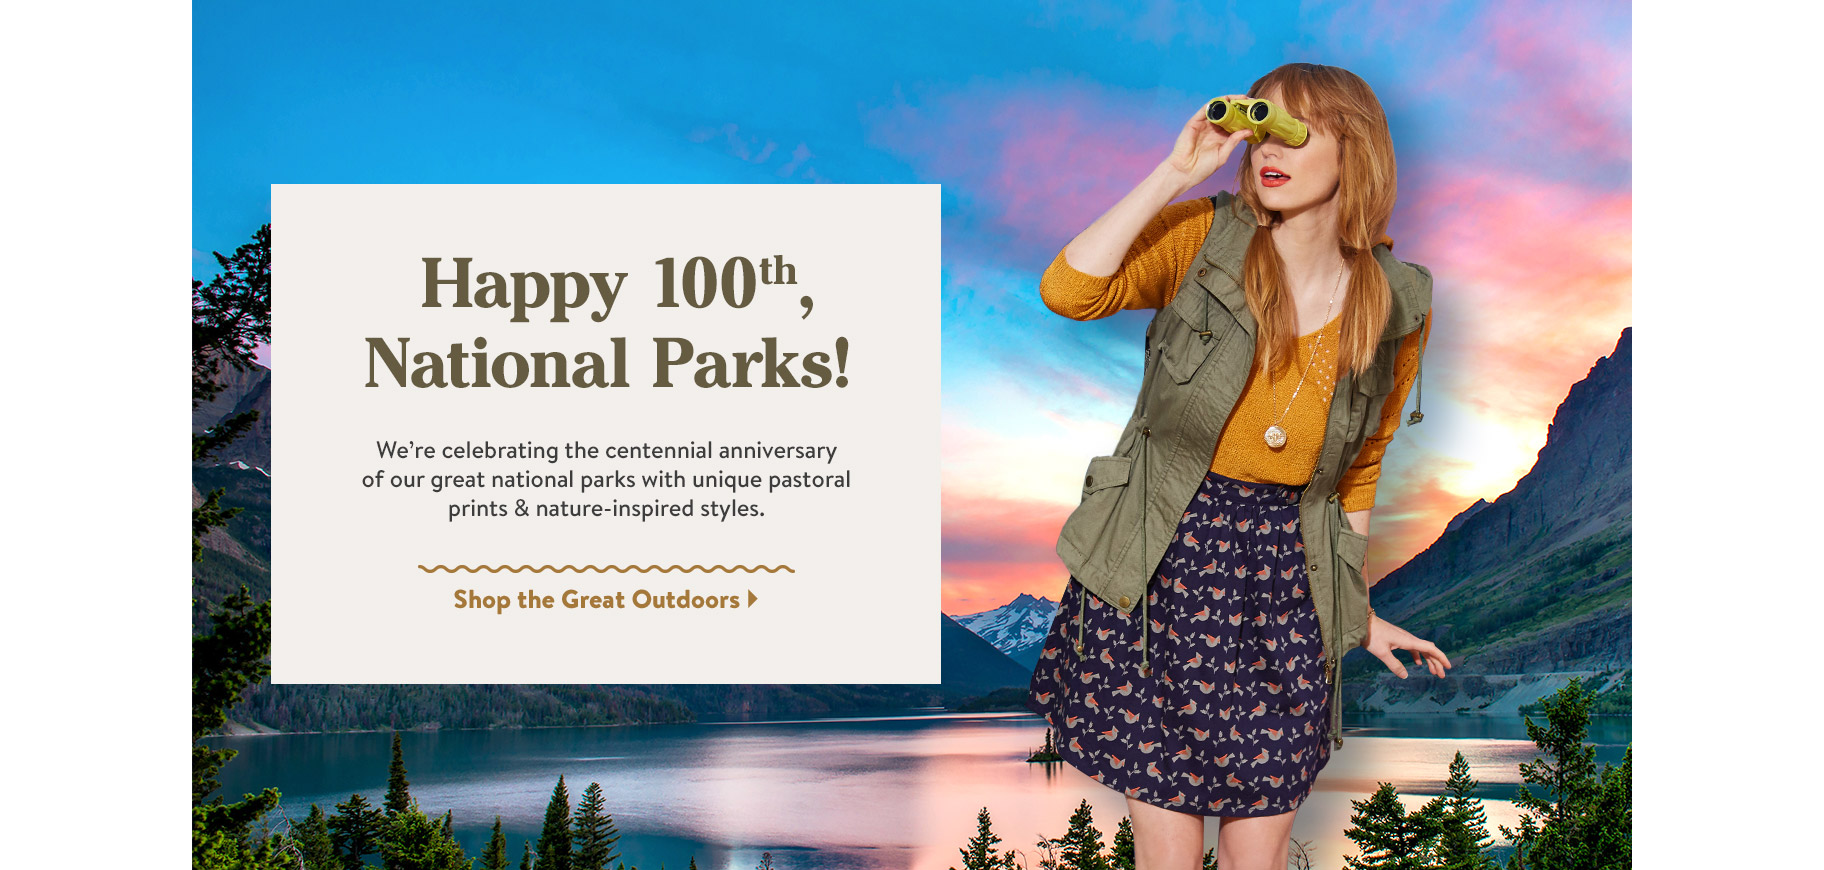 Happy 100th, National Parks! We're celebrating the centennial anniversary of our great national parks with unique pastoral prints & nature-inspired styles. Shop the Great Outdoors.